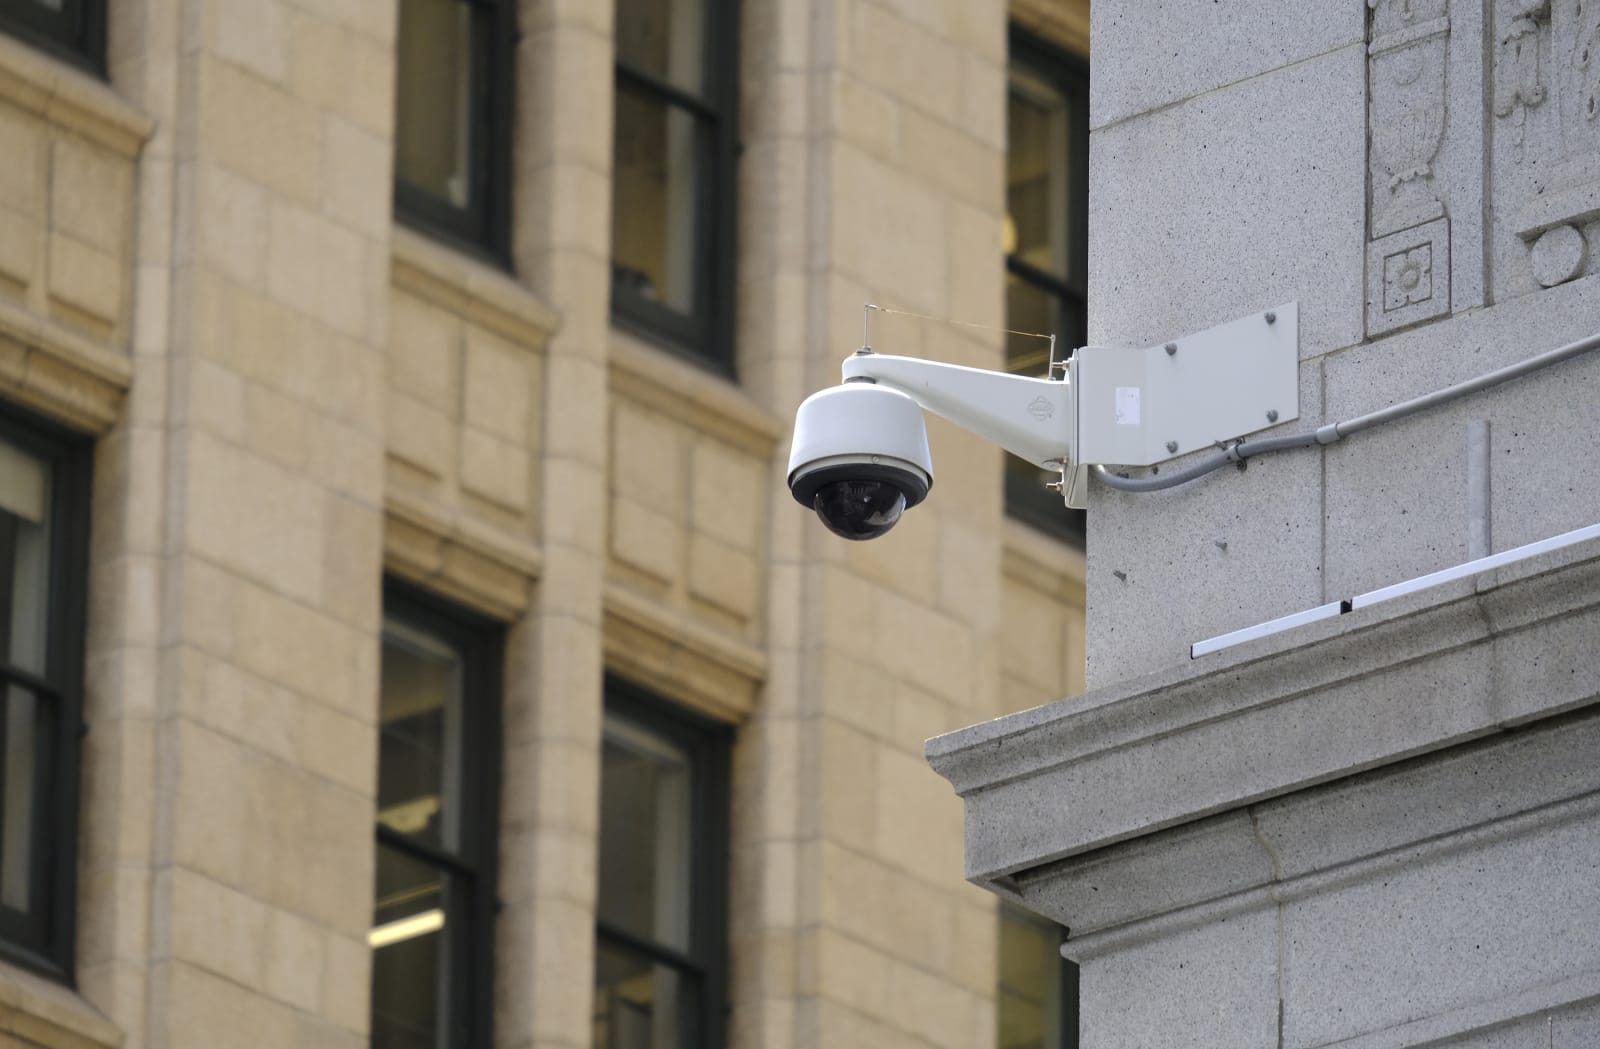 Recommended Reading: Facial recognition, police and privacy